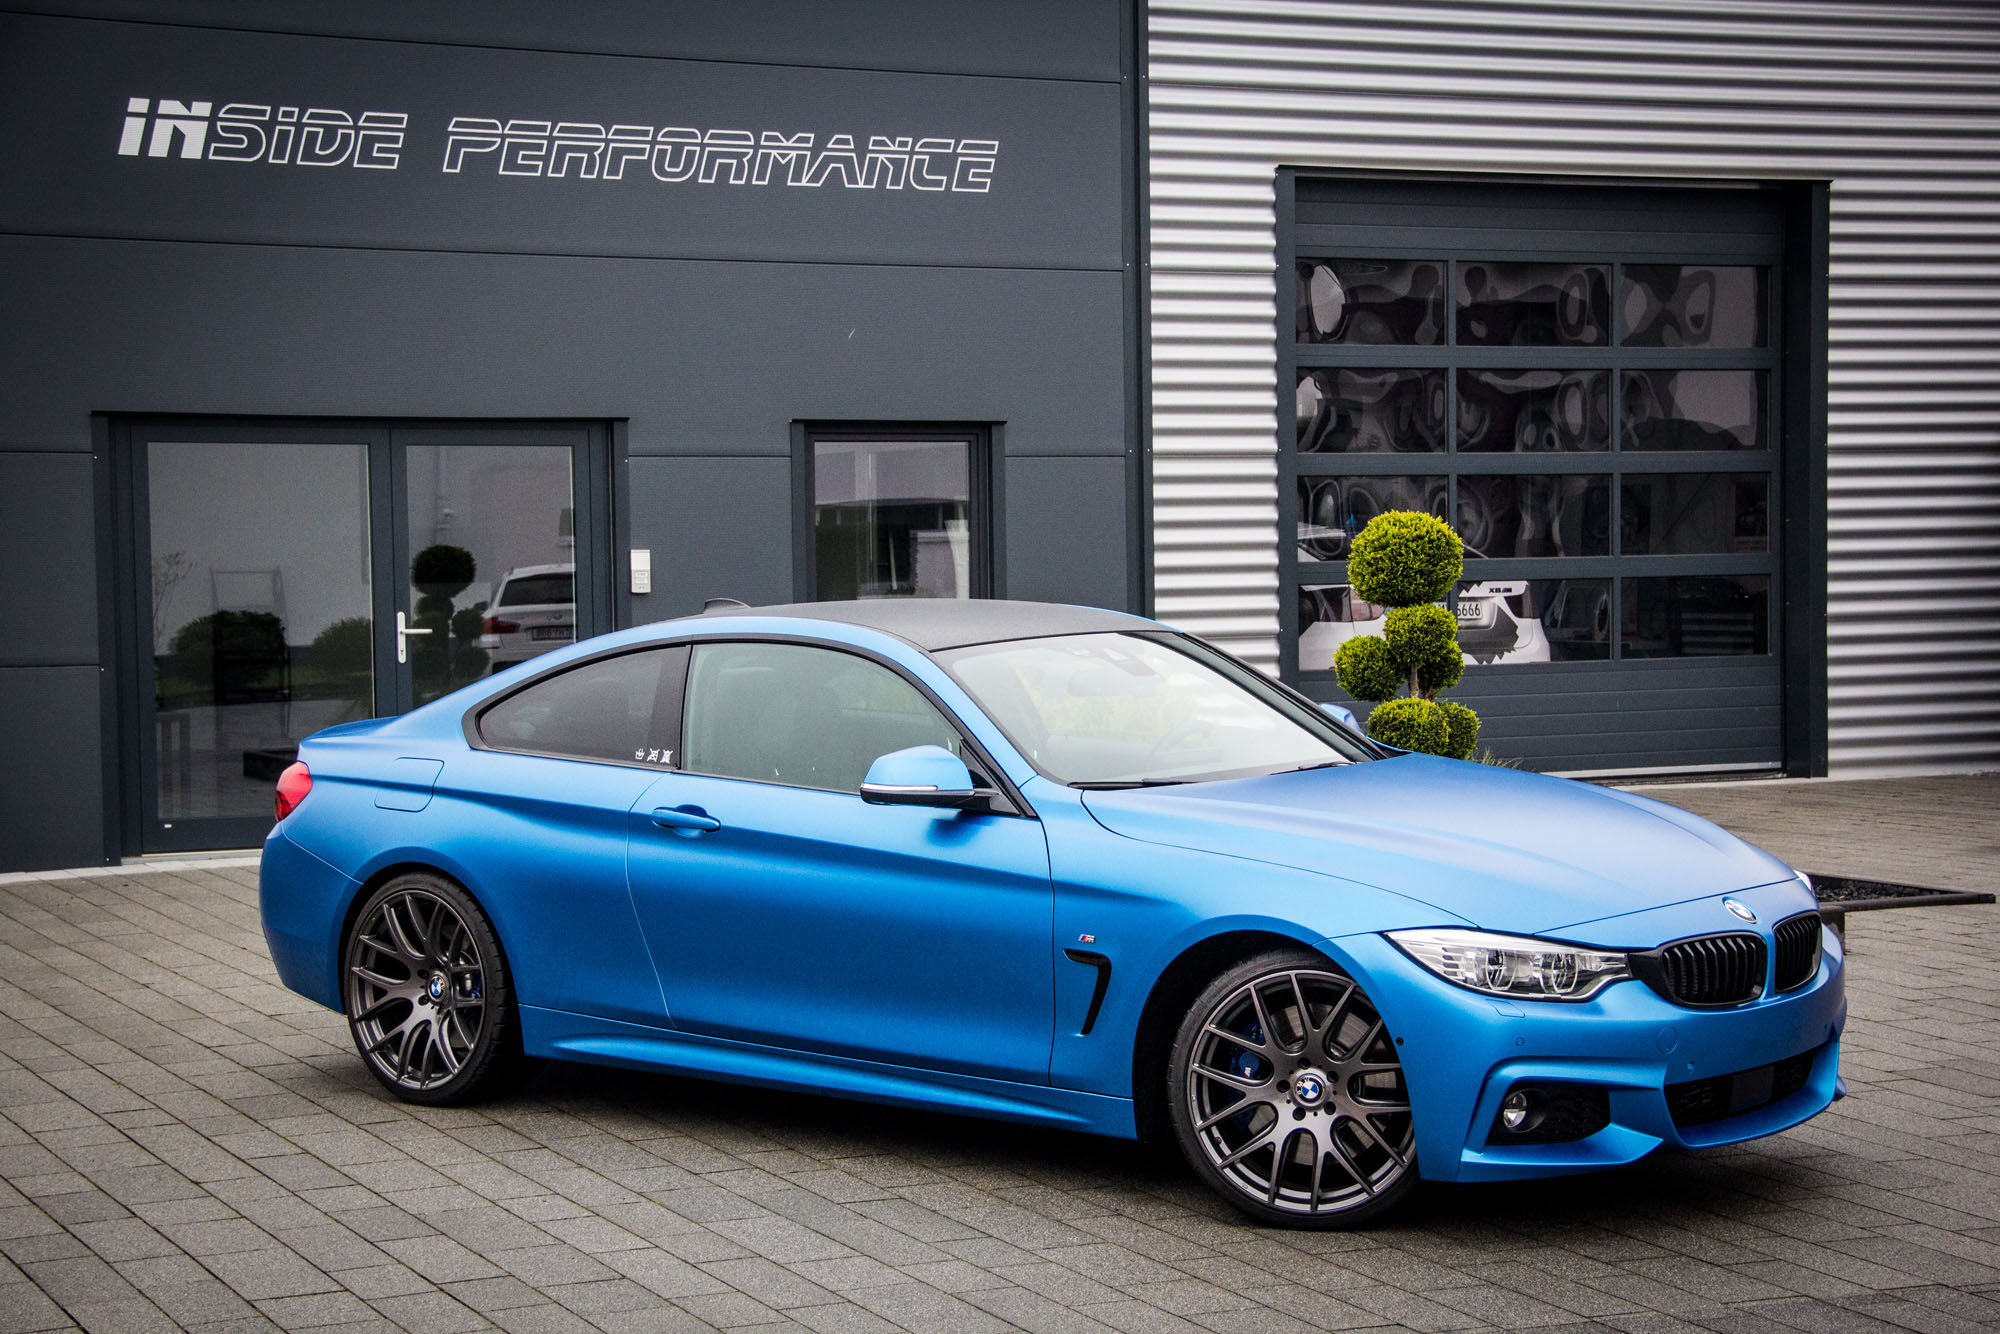 bmw 430d coup f32 neues tuningpaket la. Black Bedroom Furniture Sets. Home Design Ideas